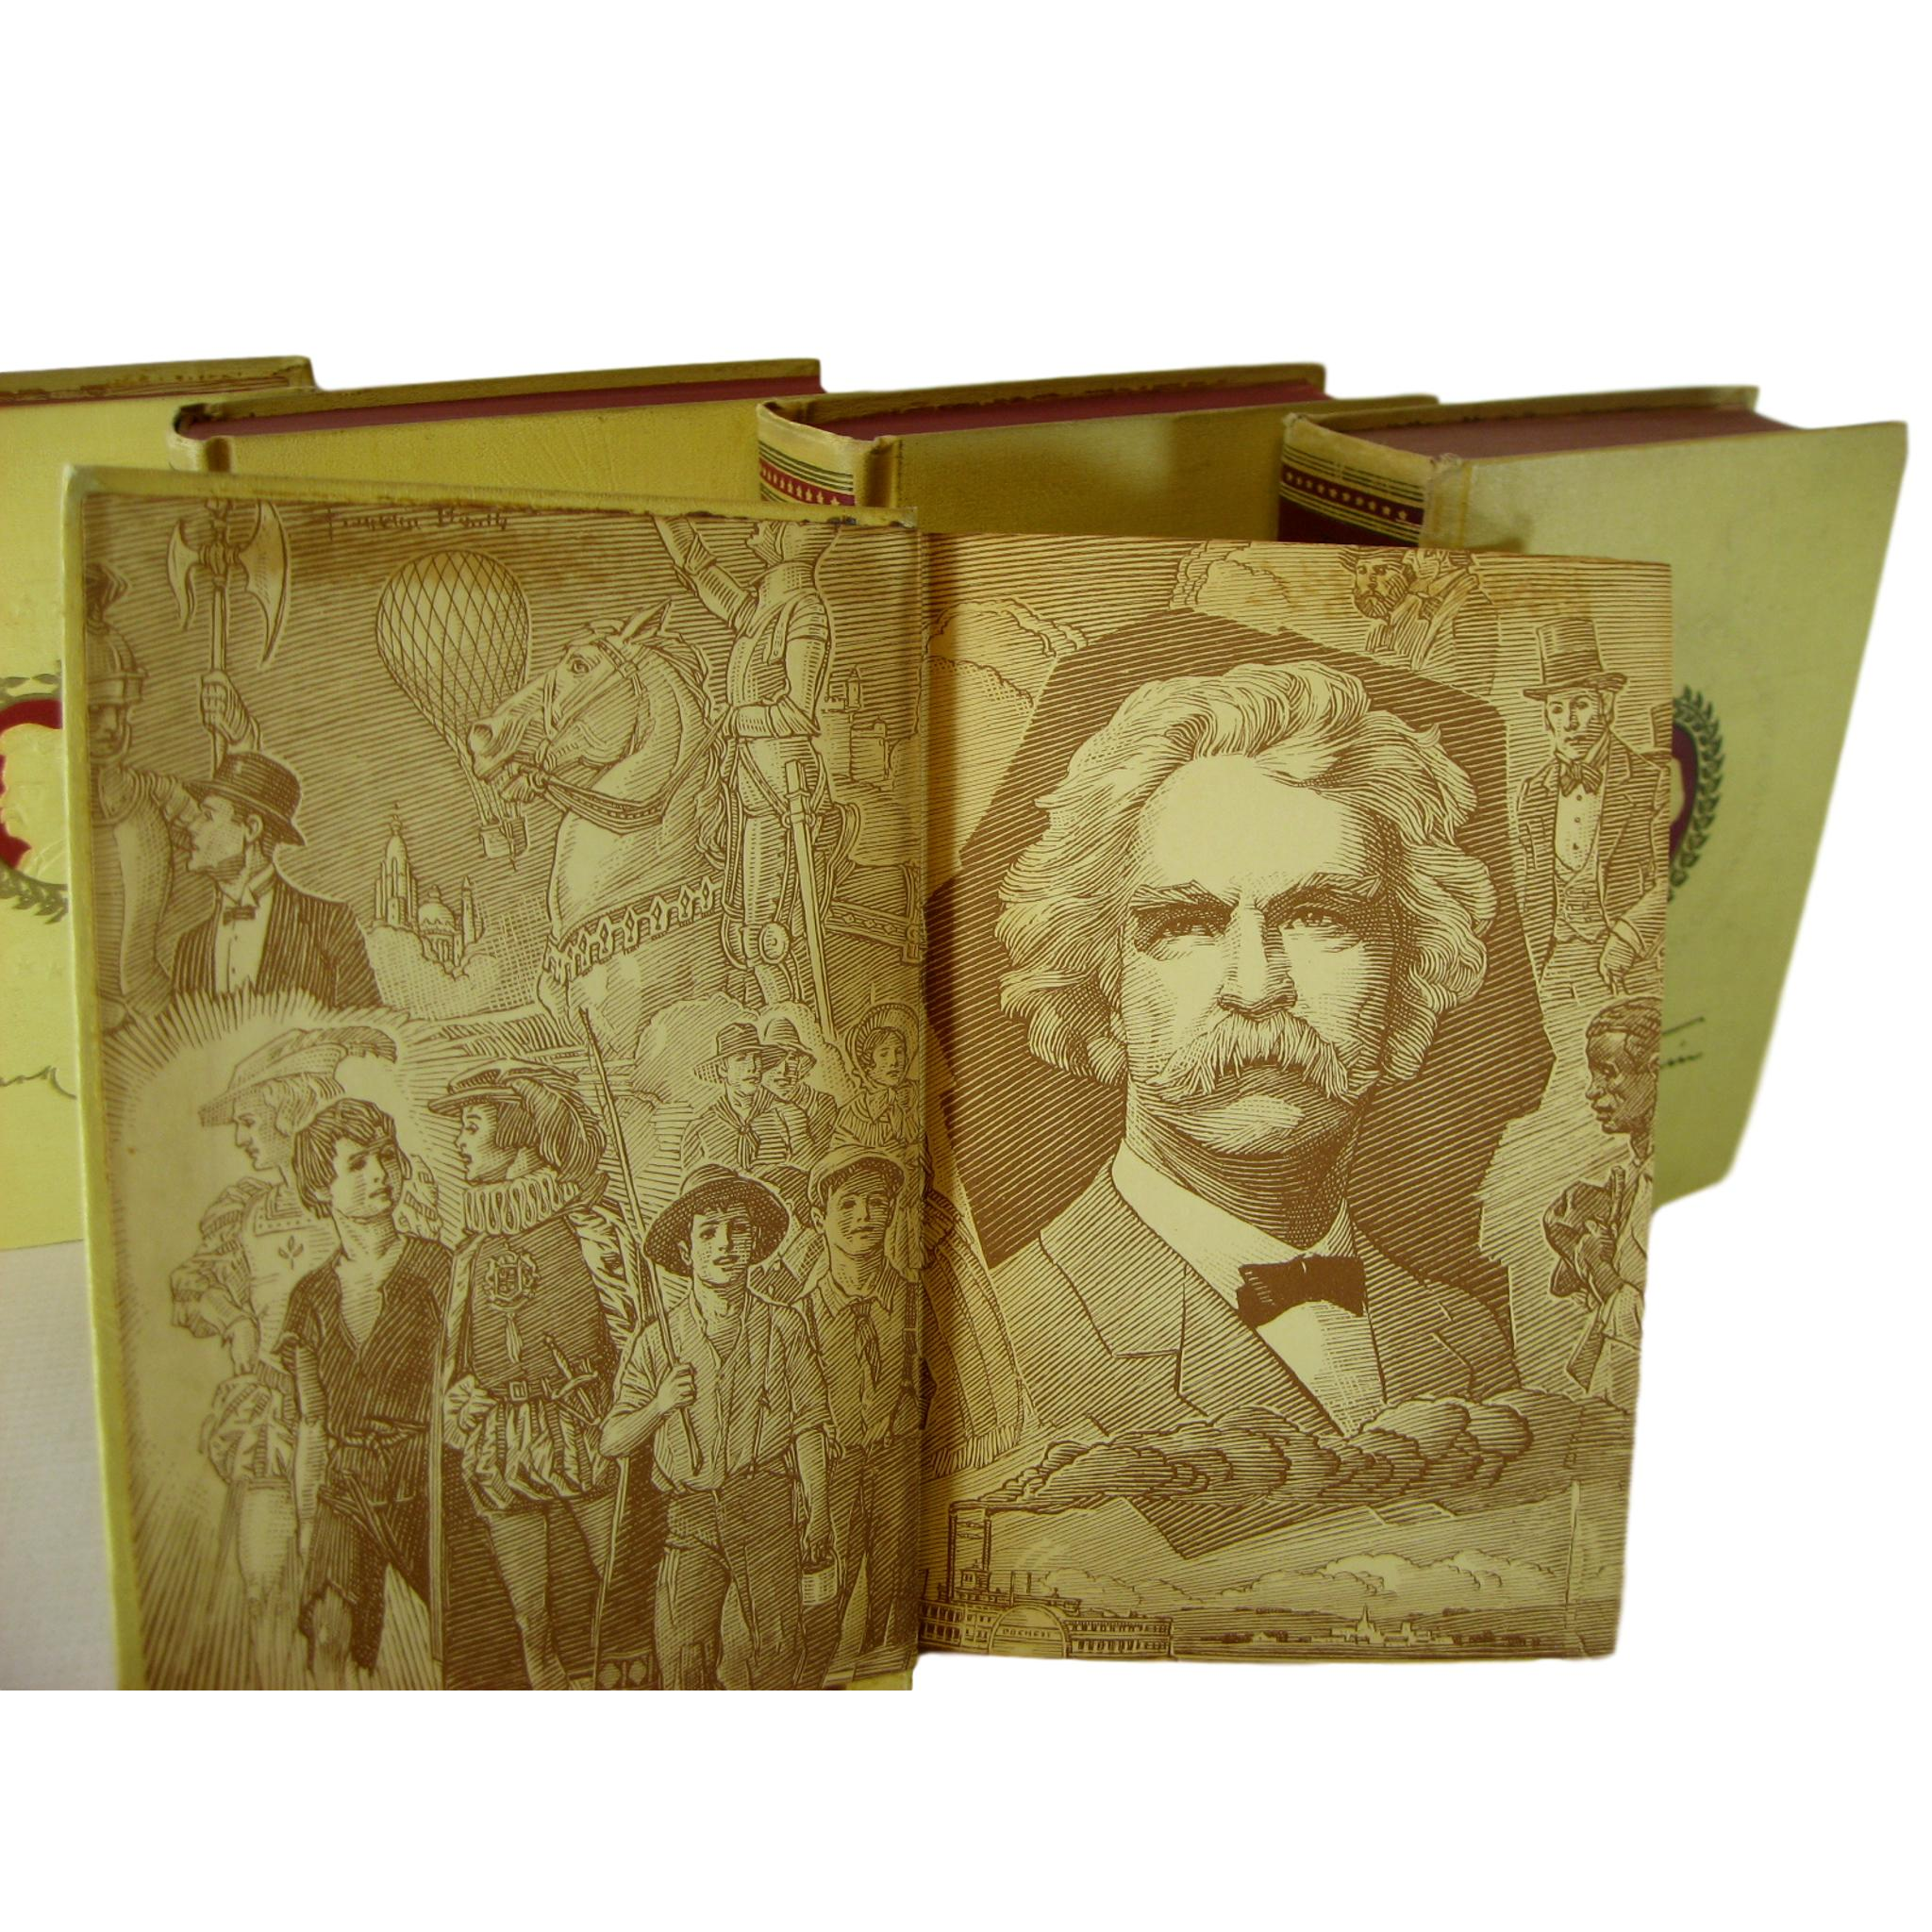 Mark Twain Book Set for Book Home Decor, Artist Edition - Decades of Vintage